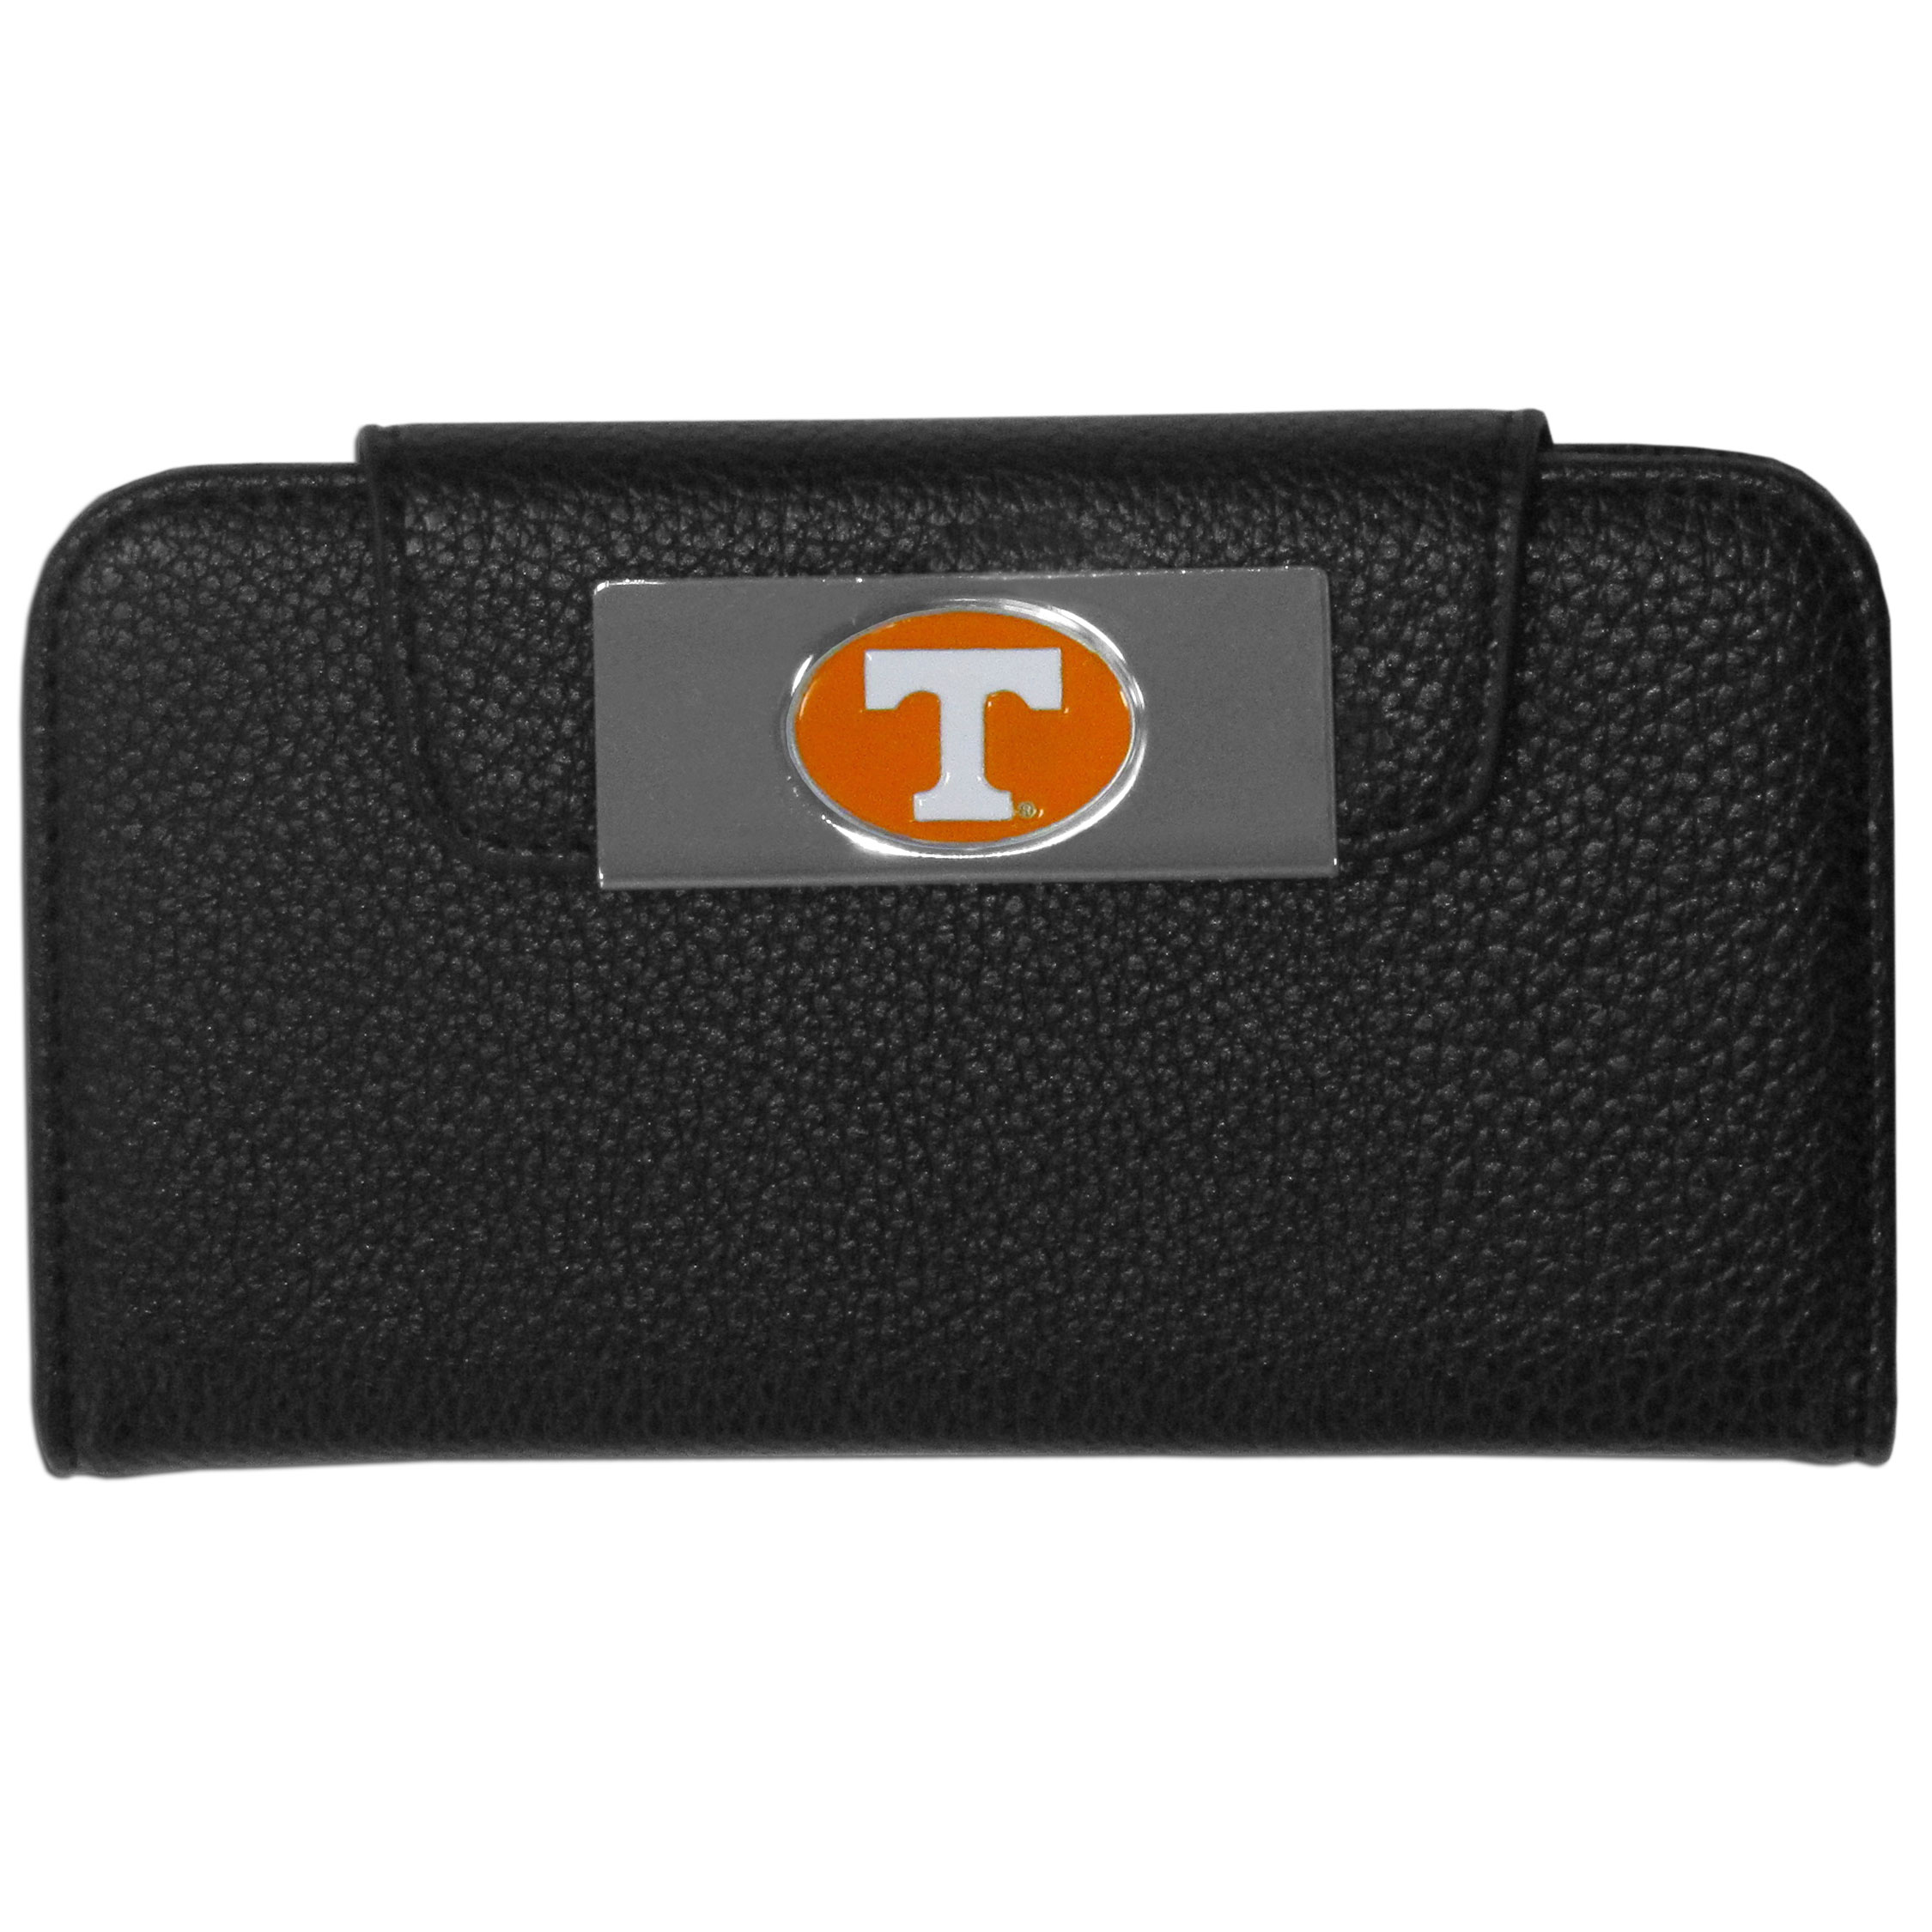 Tennessee Volunteers Samsung Galaxy S4 Wallet Case - This new & wildly popular case is ideal for those who like to travel light! The stylish case has an inner hard shell that securely holds your phone while allowing complete access to the phone's functionality. The flip cover has slots for credit cards, business cards and identification. The magnetic flip cover has a metal Tennessee Volunteers emblem on a high polish chrome backing. Fits the Samsung Galaxy S4